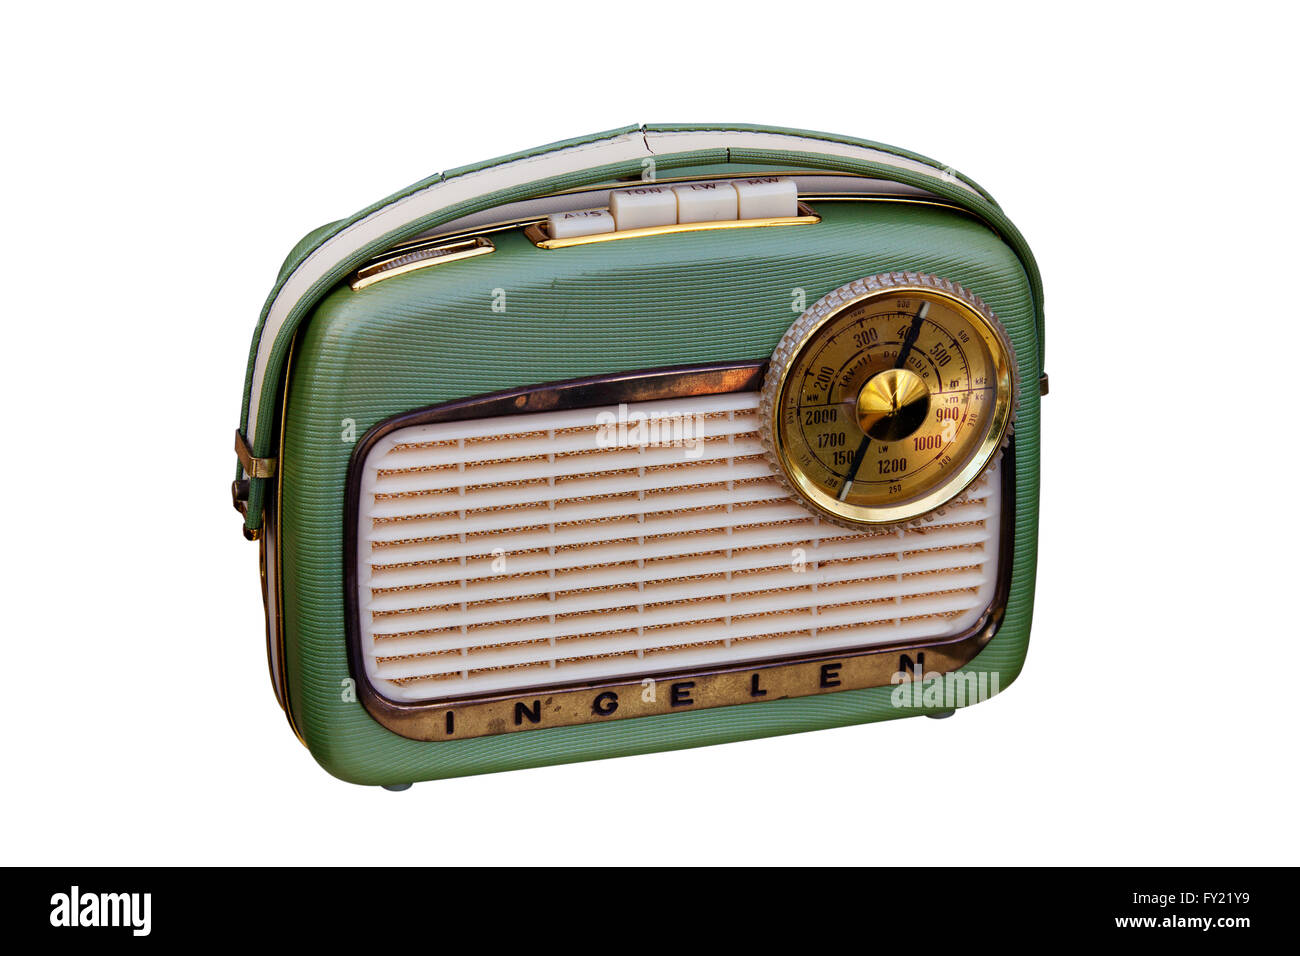 Old portable radio, 1950s - Stock Image